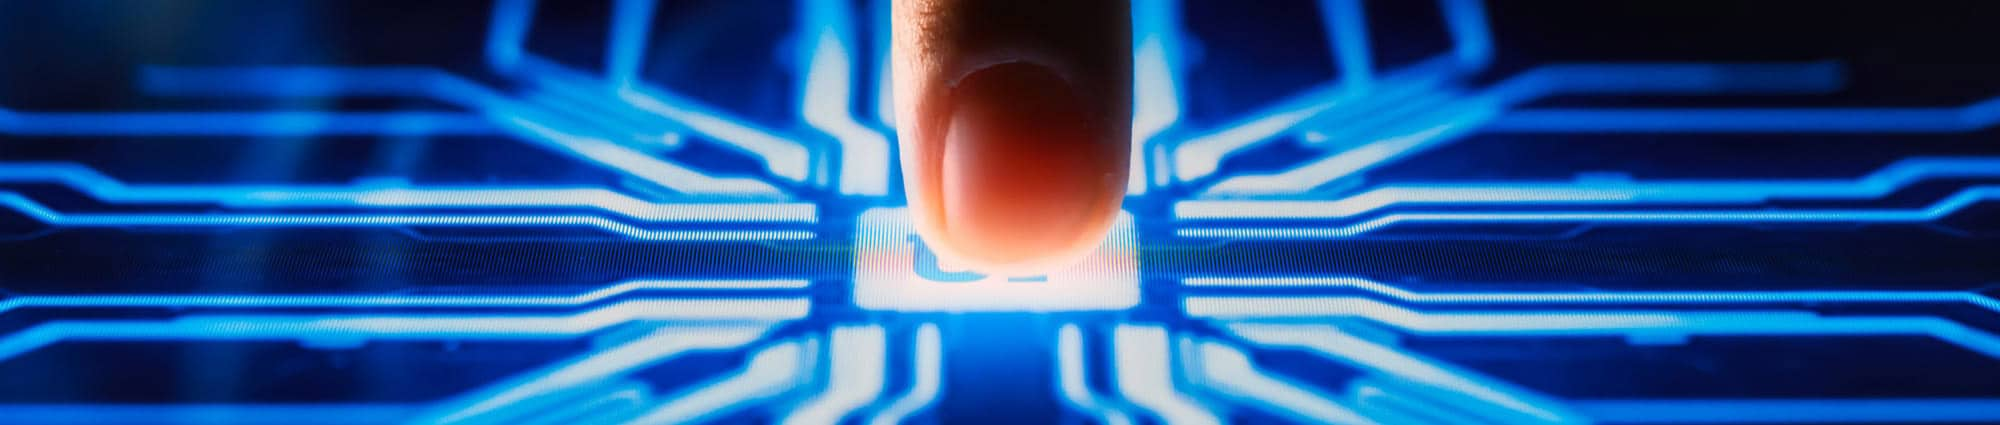 Close up of a fingertip touching what looks like a UF icon on a computer board.